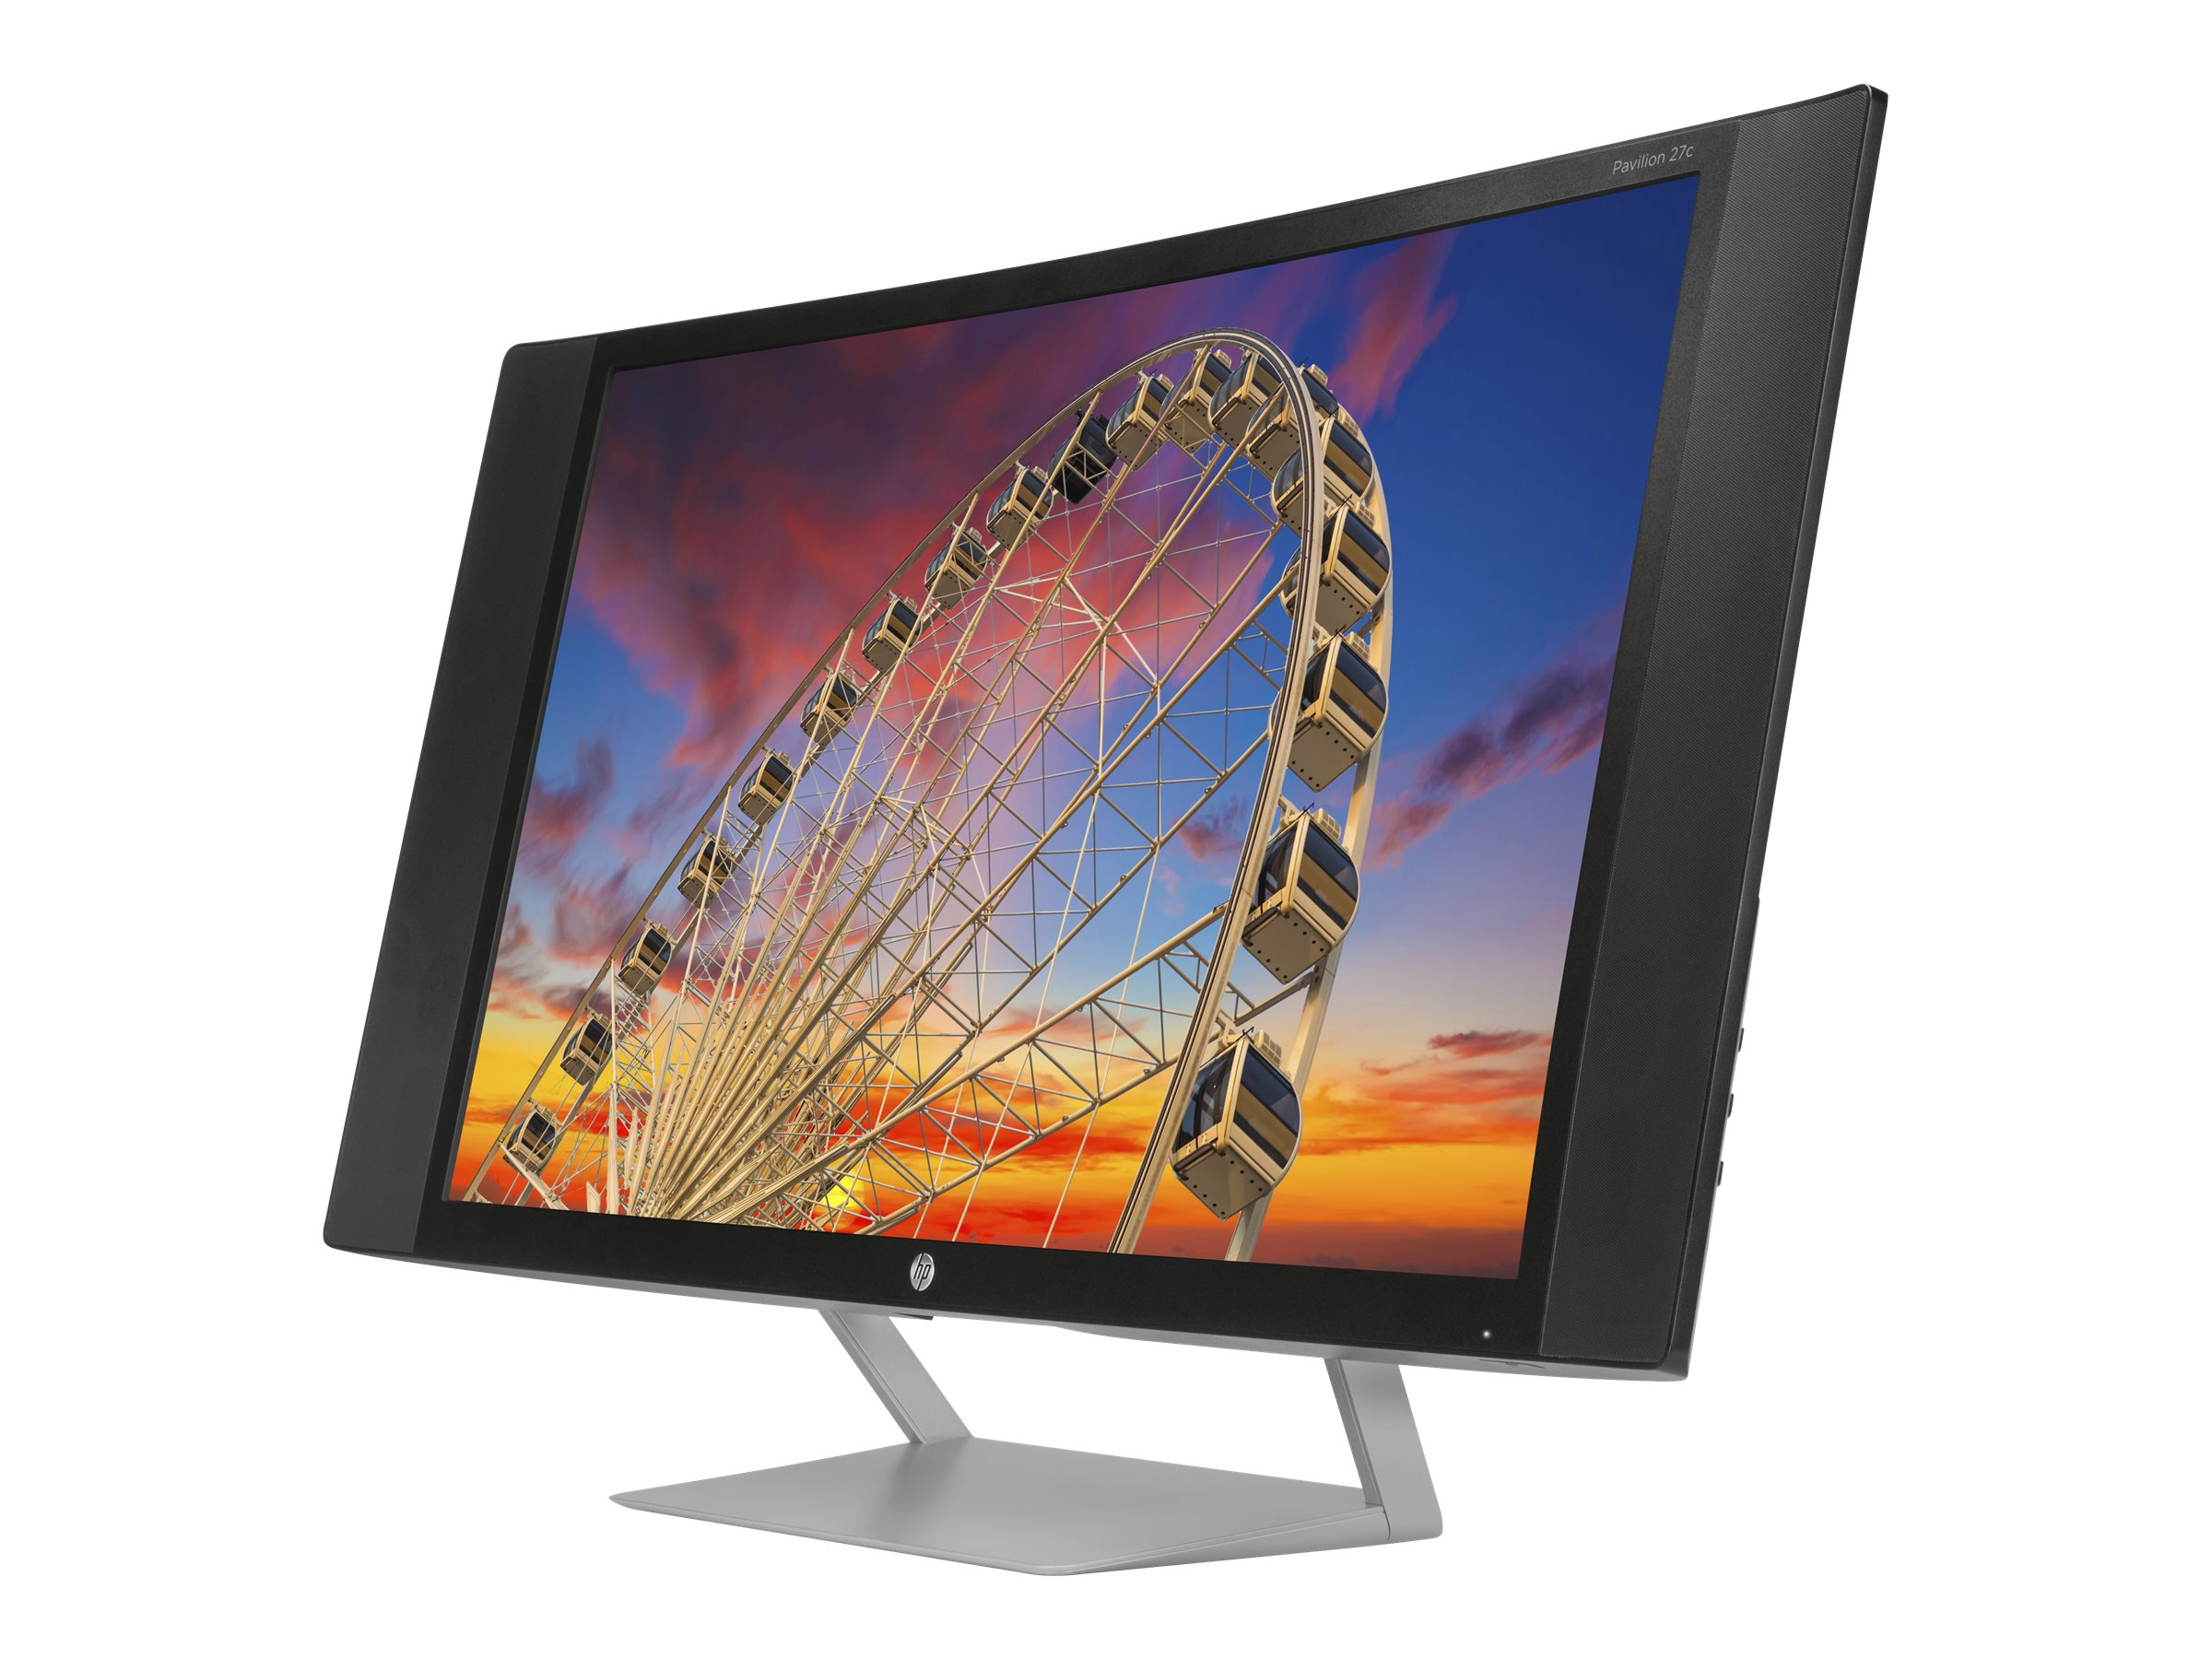 HP 27 Pavilion 27c Full HD LED-LCD Curved Display, Black, J9G67AA#ABA